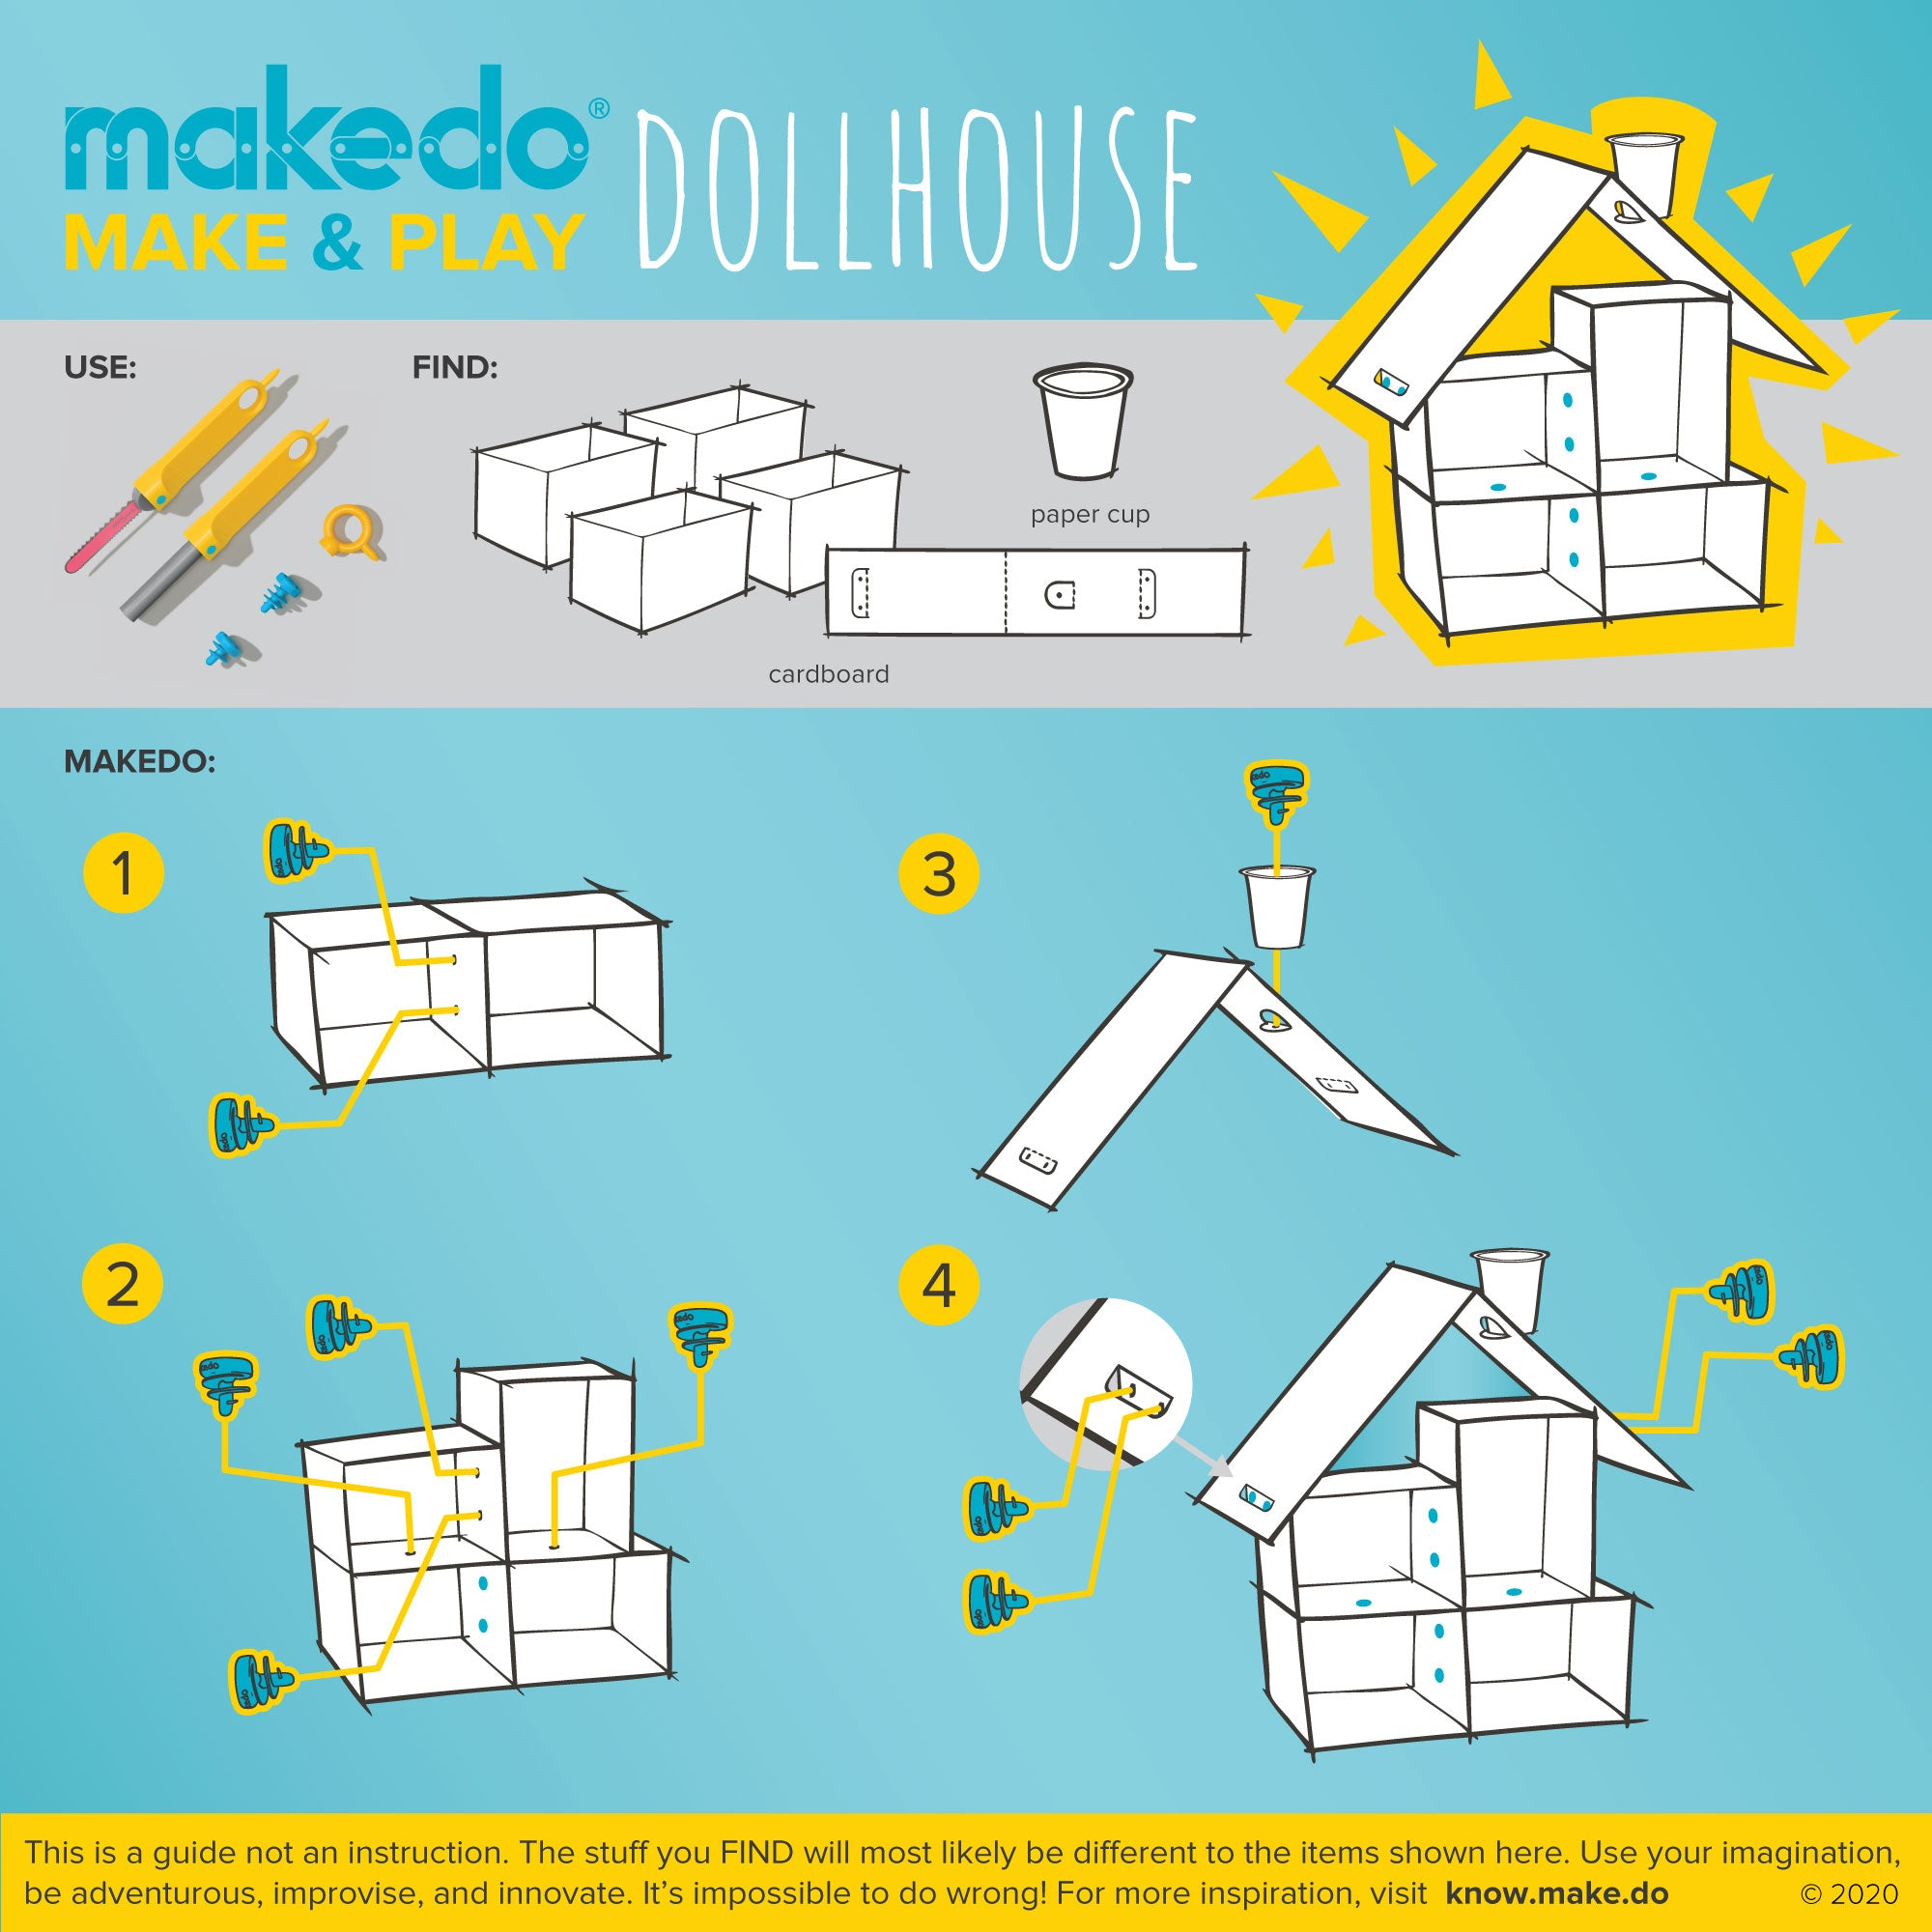 Makedo guided creation - Make & Play - Dollhouse